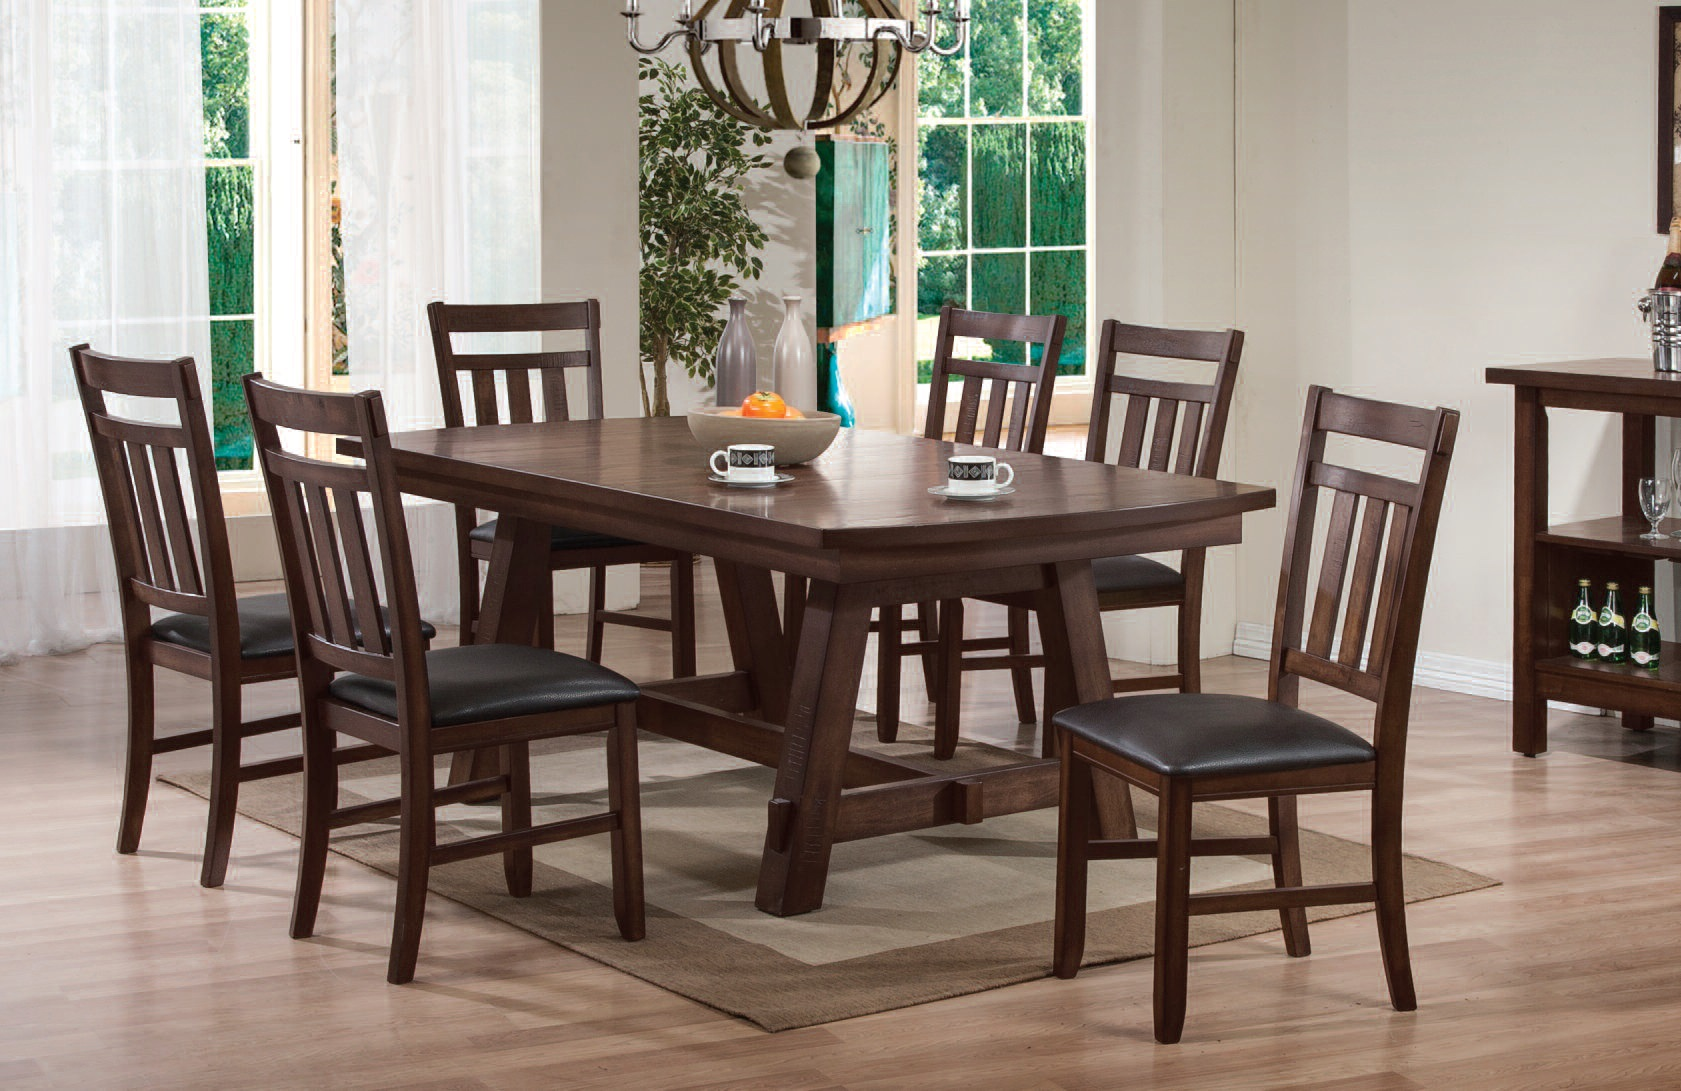 Deals on dining room sets 28 images weekly furniture for Dining room furniture specials